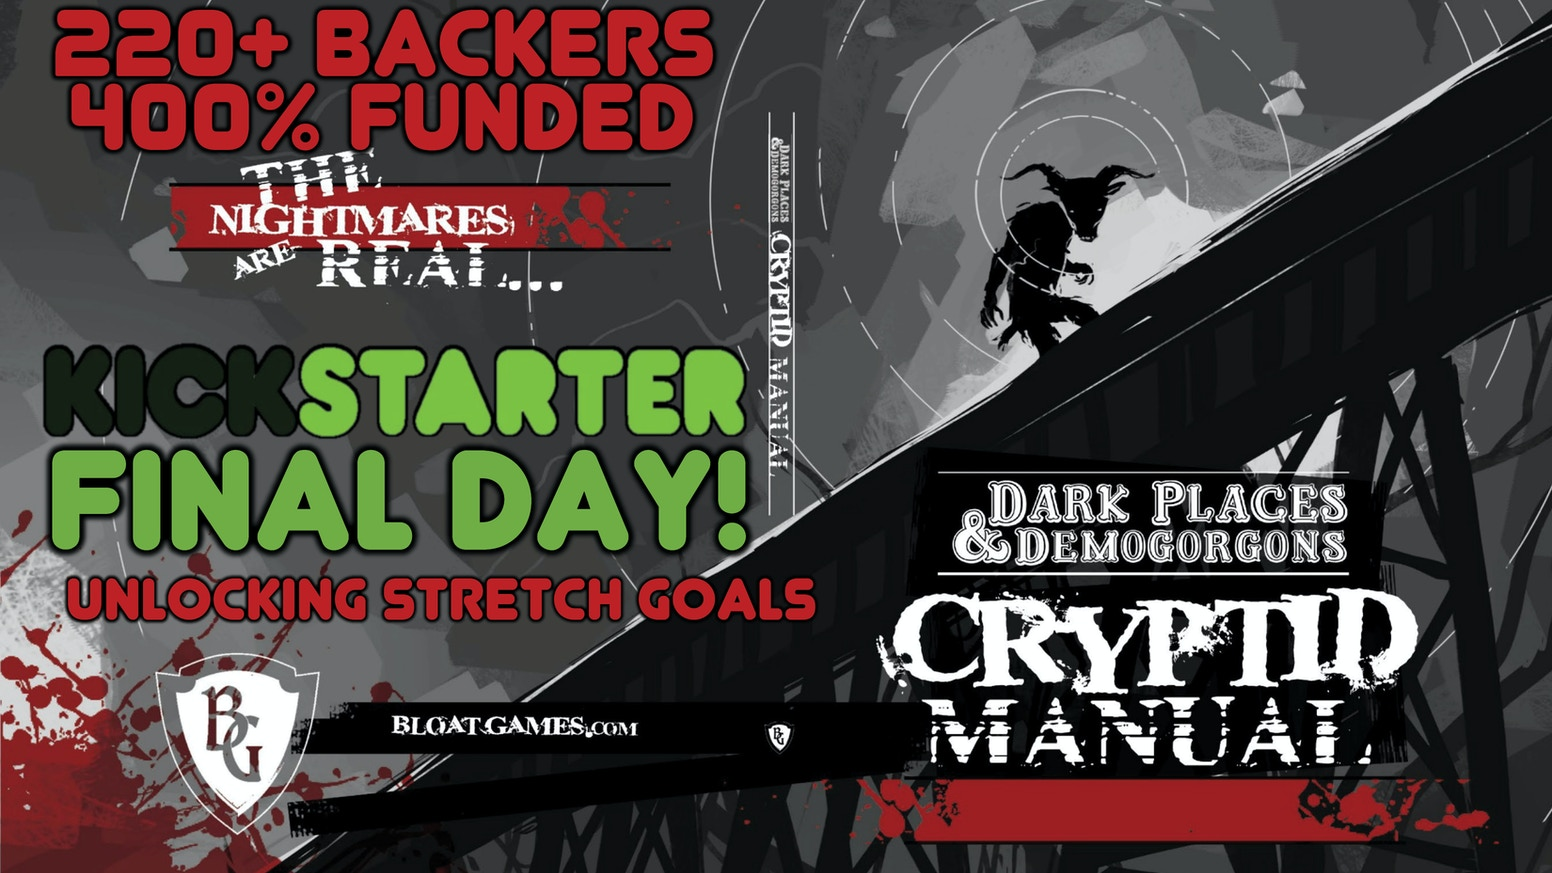 Dark Places & Demogorgons: The Cryptid Manual, Tabletop RPG